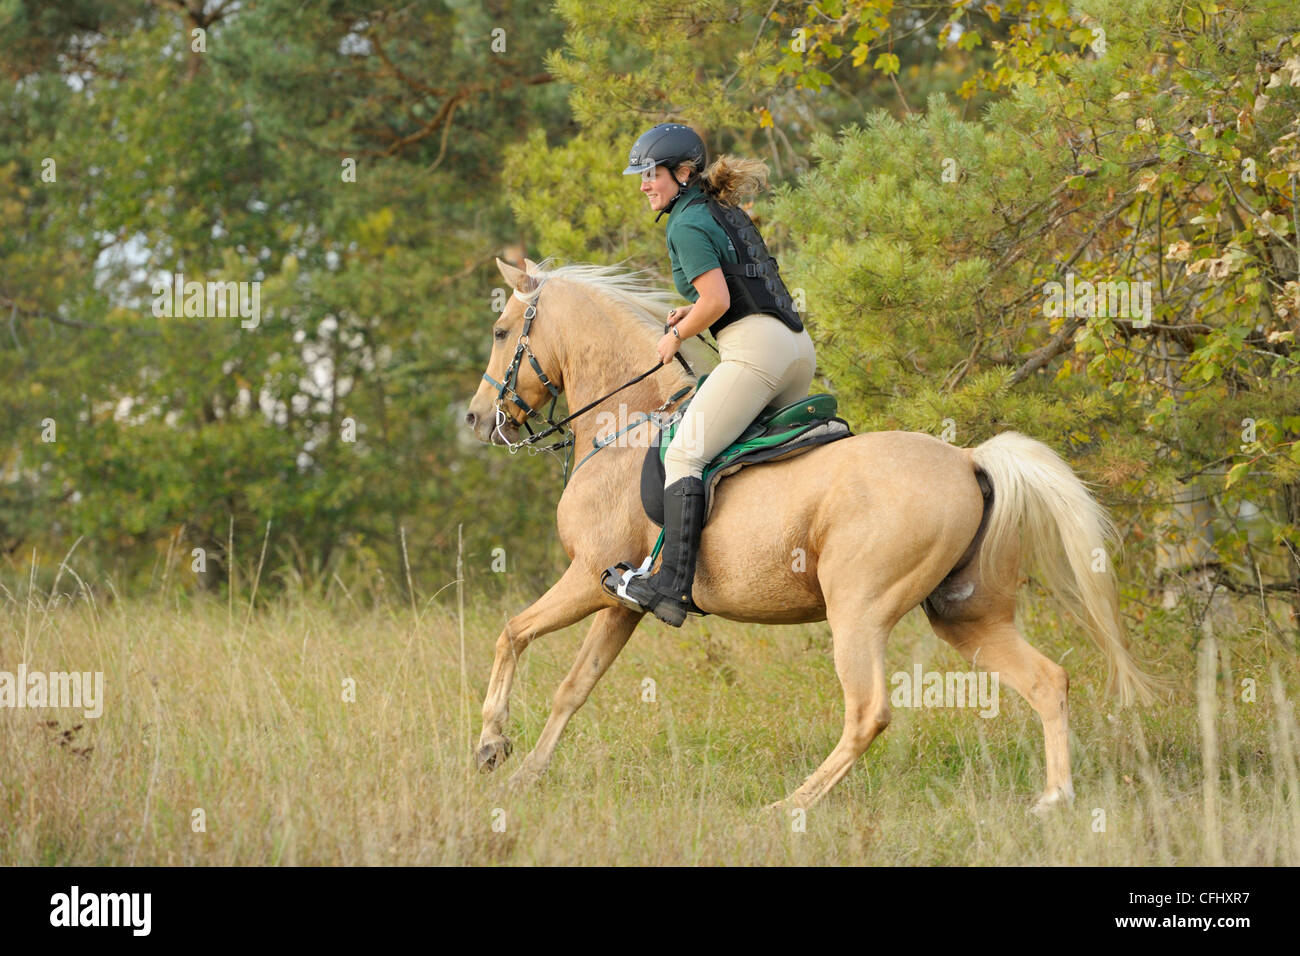 Rider wearing a back protector galloping on a sweating palomino thoroughbred horse - Stock Image